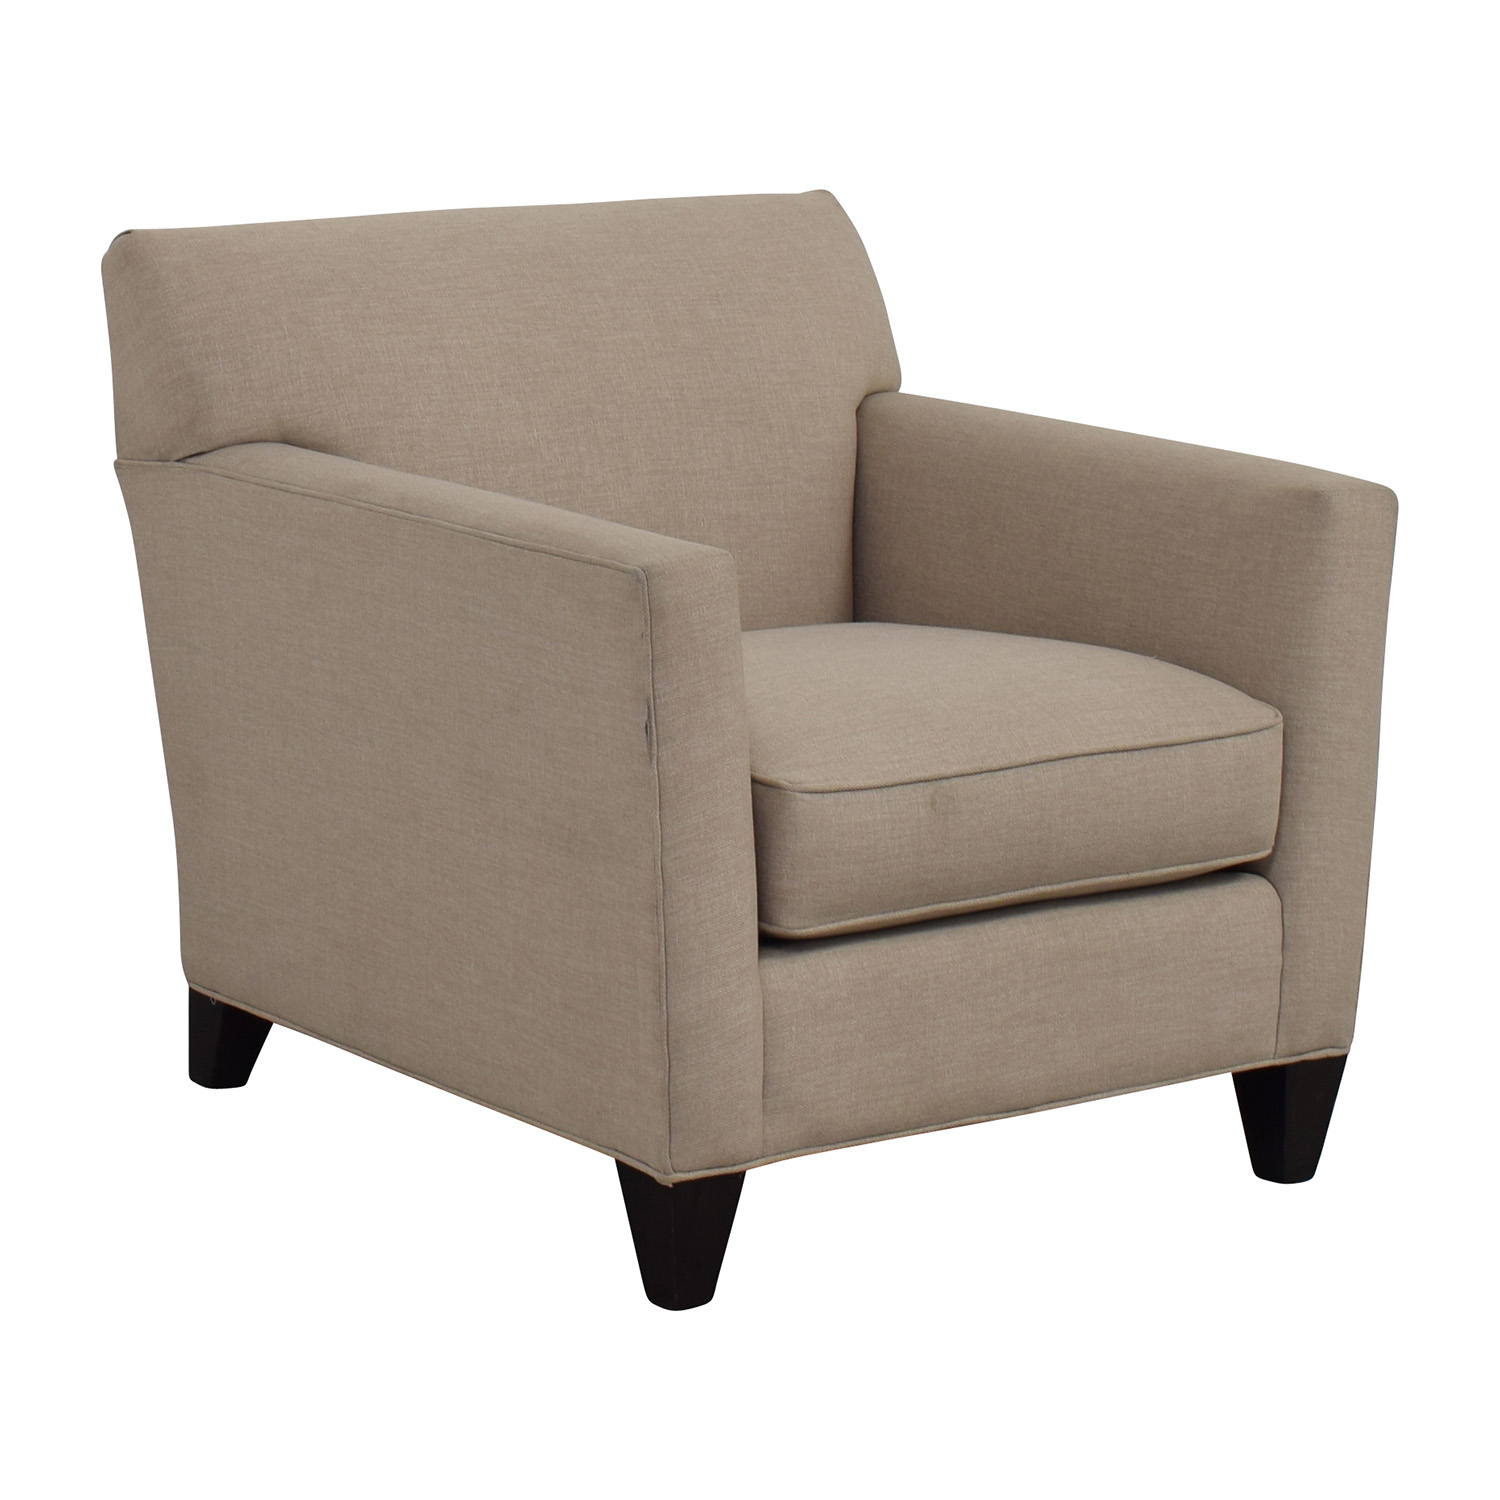 Crate Barrel Hennessy Sofa Chair Chairs